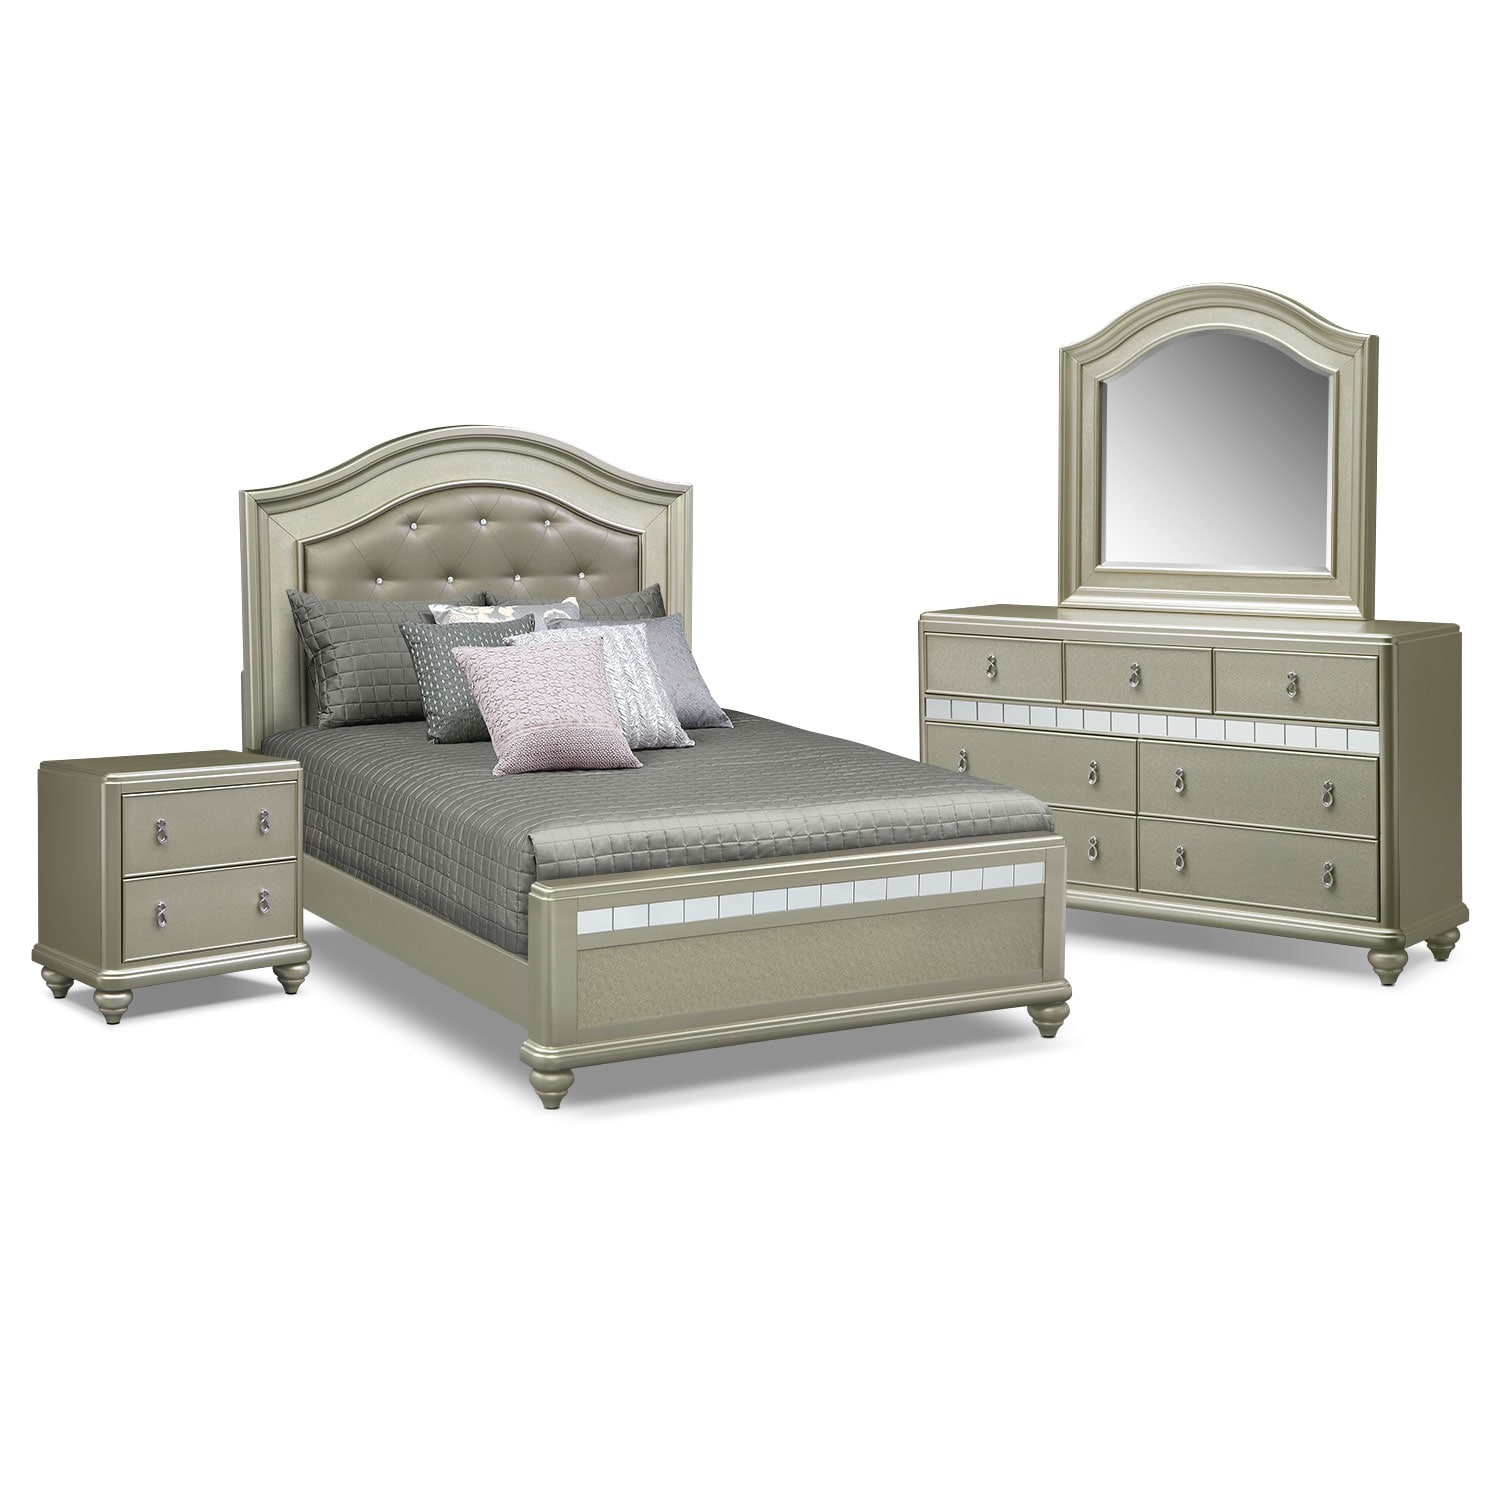 Serena Queen 6-Piece Bedroom Set- Platinum